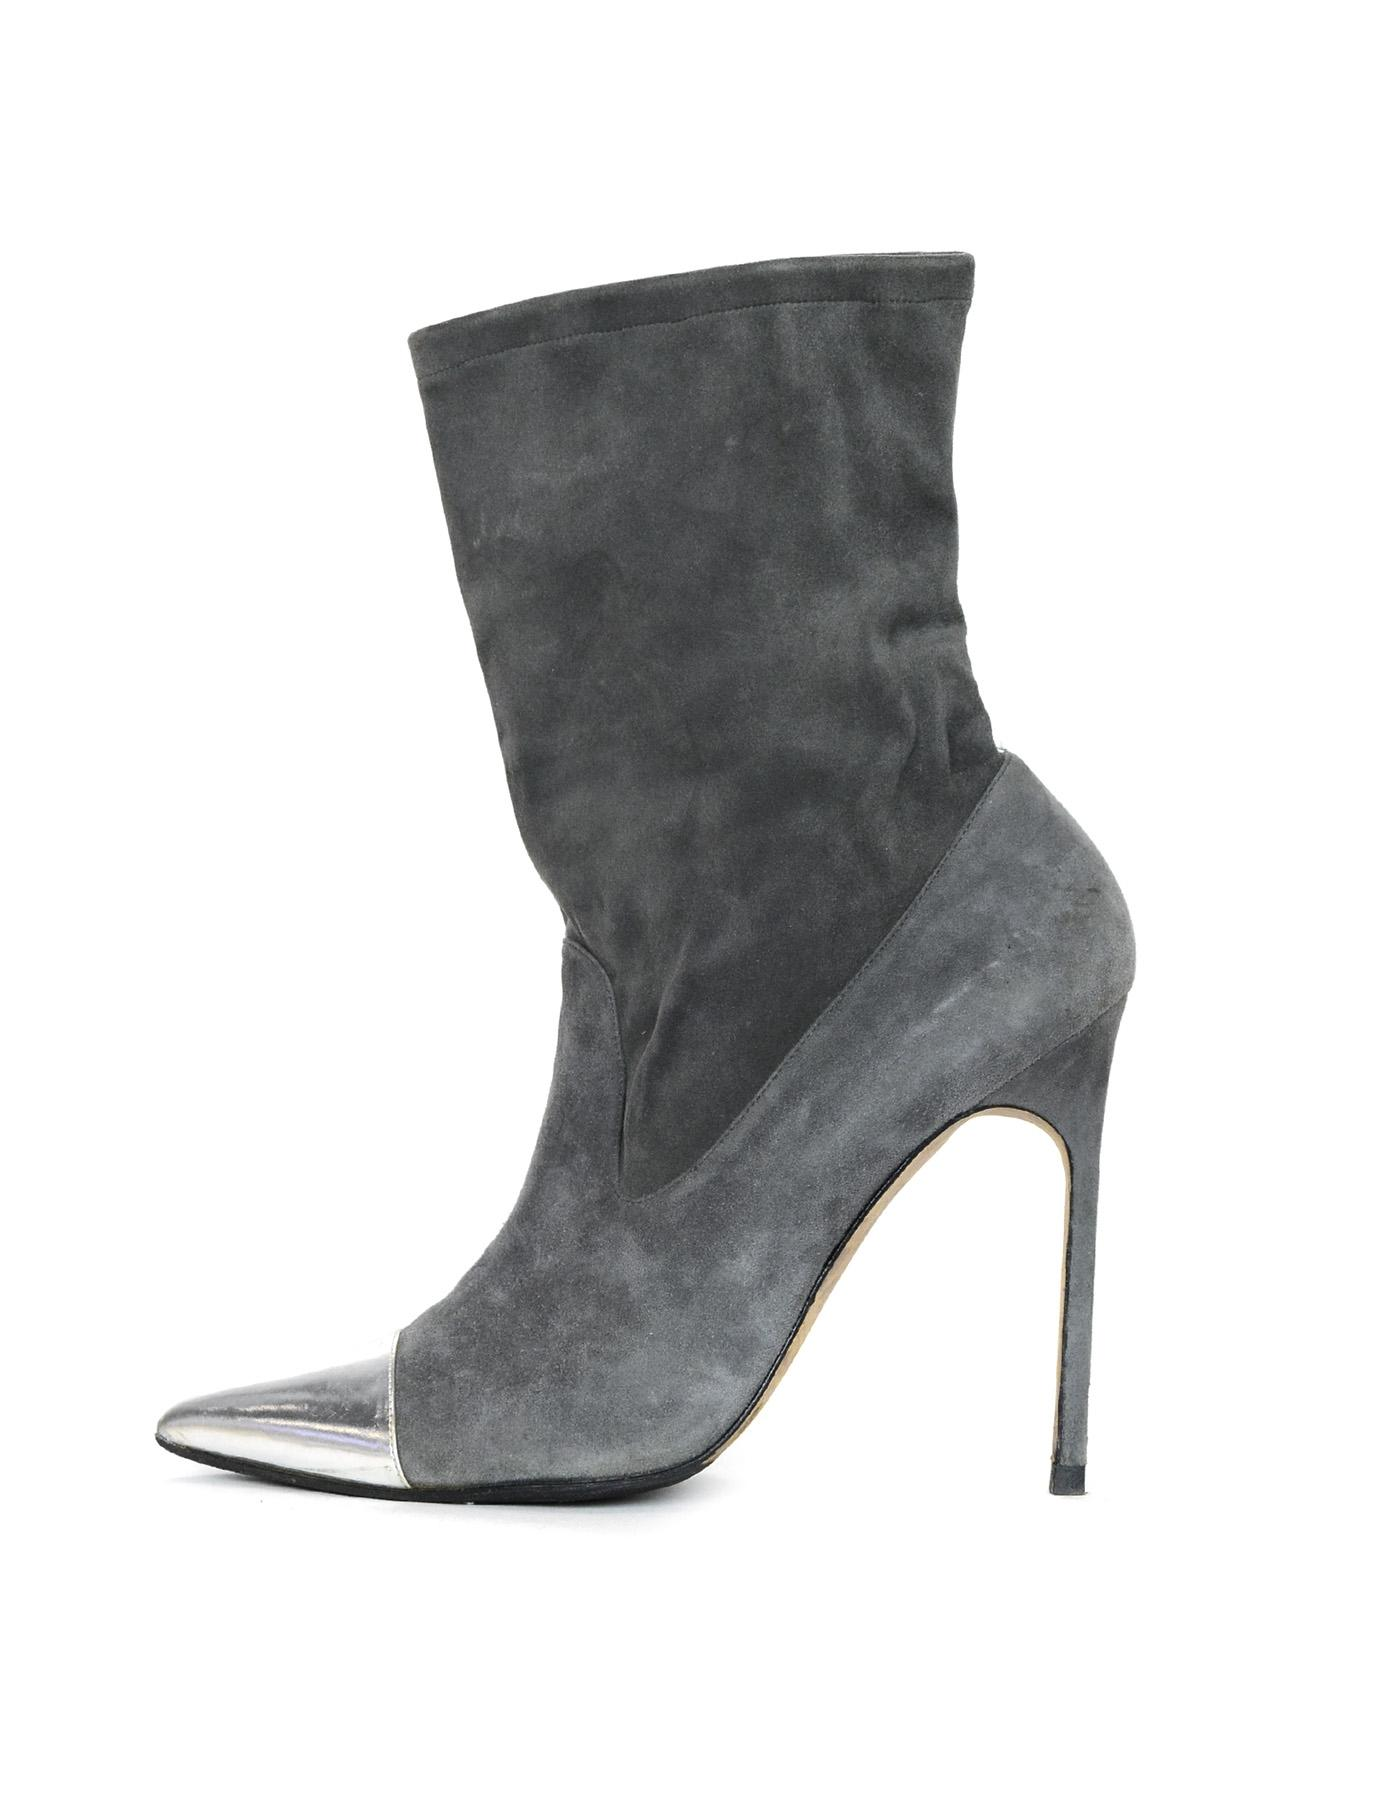 Manolo Blahnik Grey Suede Pointed Toe Heeled W/ Silver Cap Toe Boots/Booties Size EU 39.5 (Approx. US 9.5) Regular (M, B)